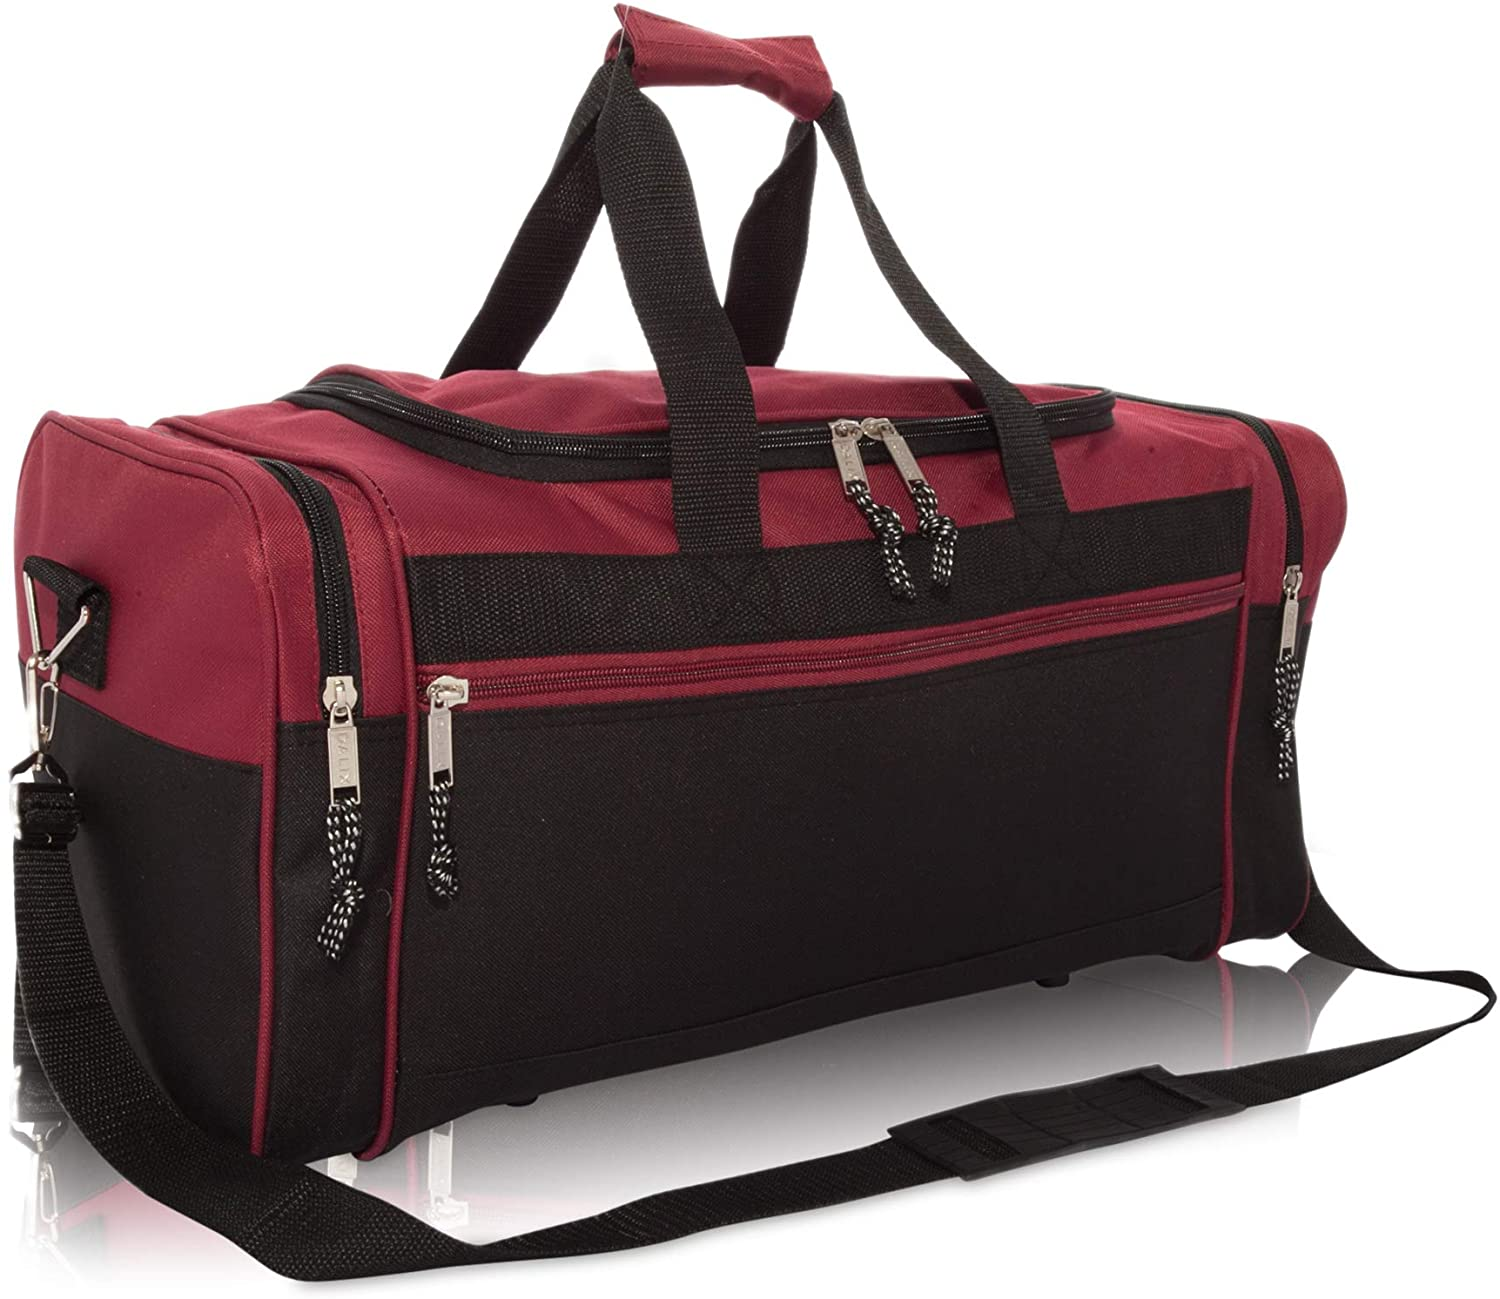 10. DALIX 21 Inch Blank Sports Duffle Bag With Adjustable Strap